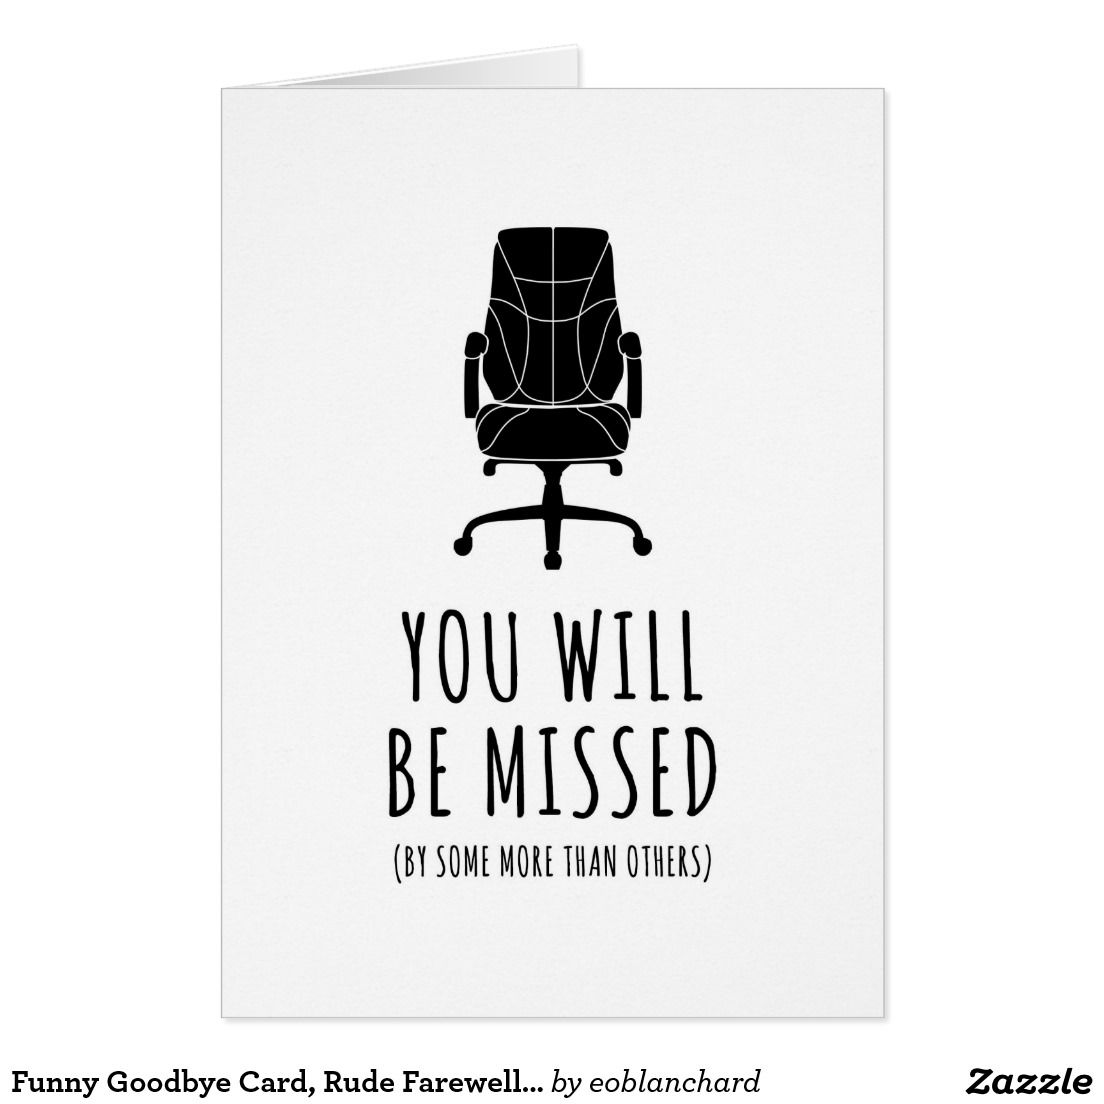 Funny Goodbye Card, Rude Farewell Card, Funny Card | Zazzle.com